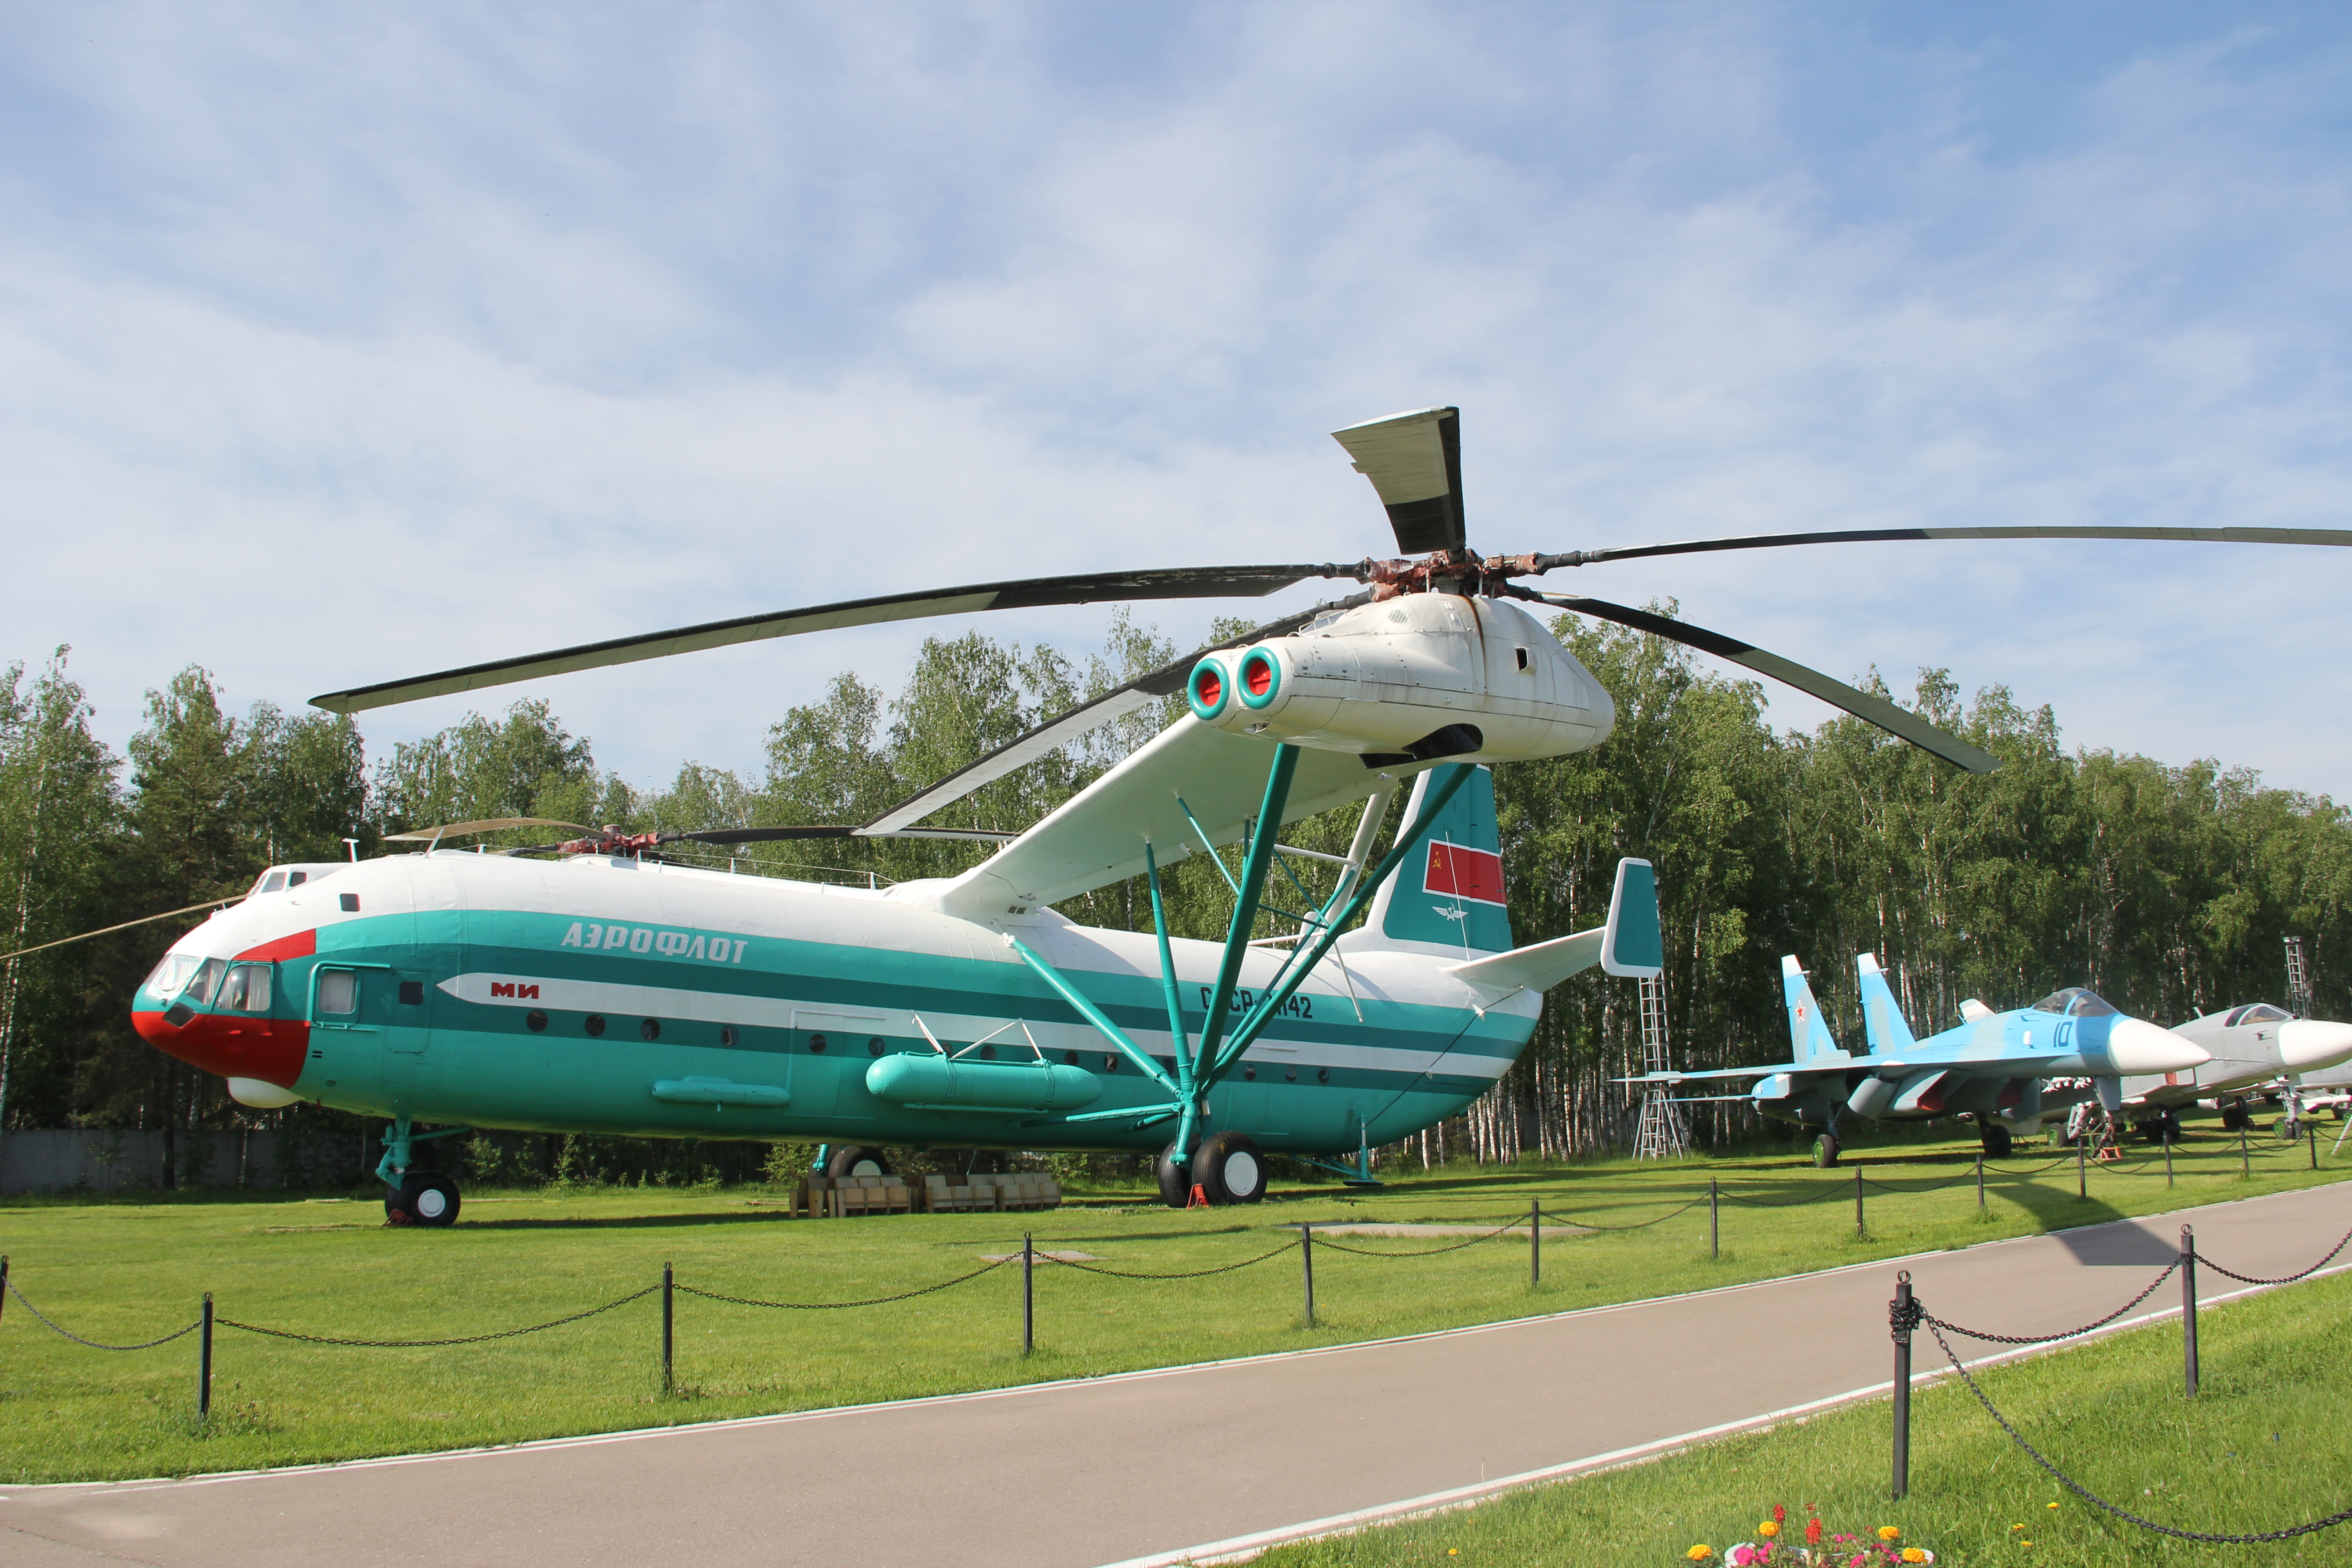 russian transport helicopter with File Mil V 12 Mi 12  8912029311 on BTR 80A Russian APC 1 72 ACE 72172 additionally File C5 AMC loading semi further Walfas Transport Black Ghost Kamov KA 58 510314743 likewise Antonov 225 Landing Antonov Antonov 225 as well .